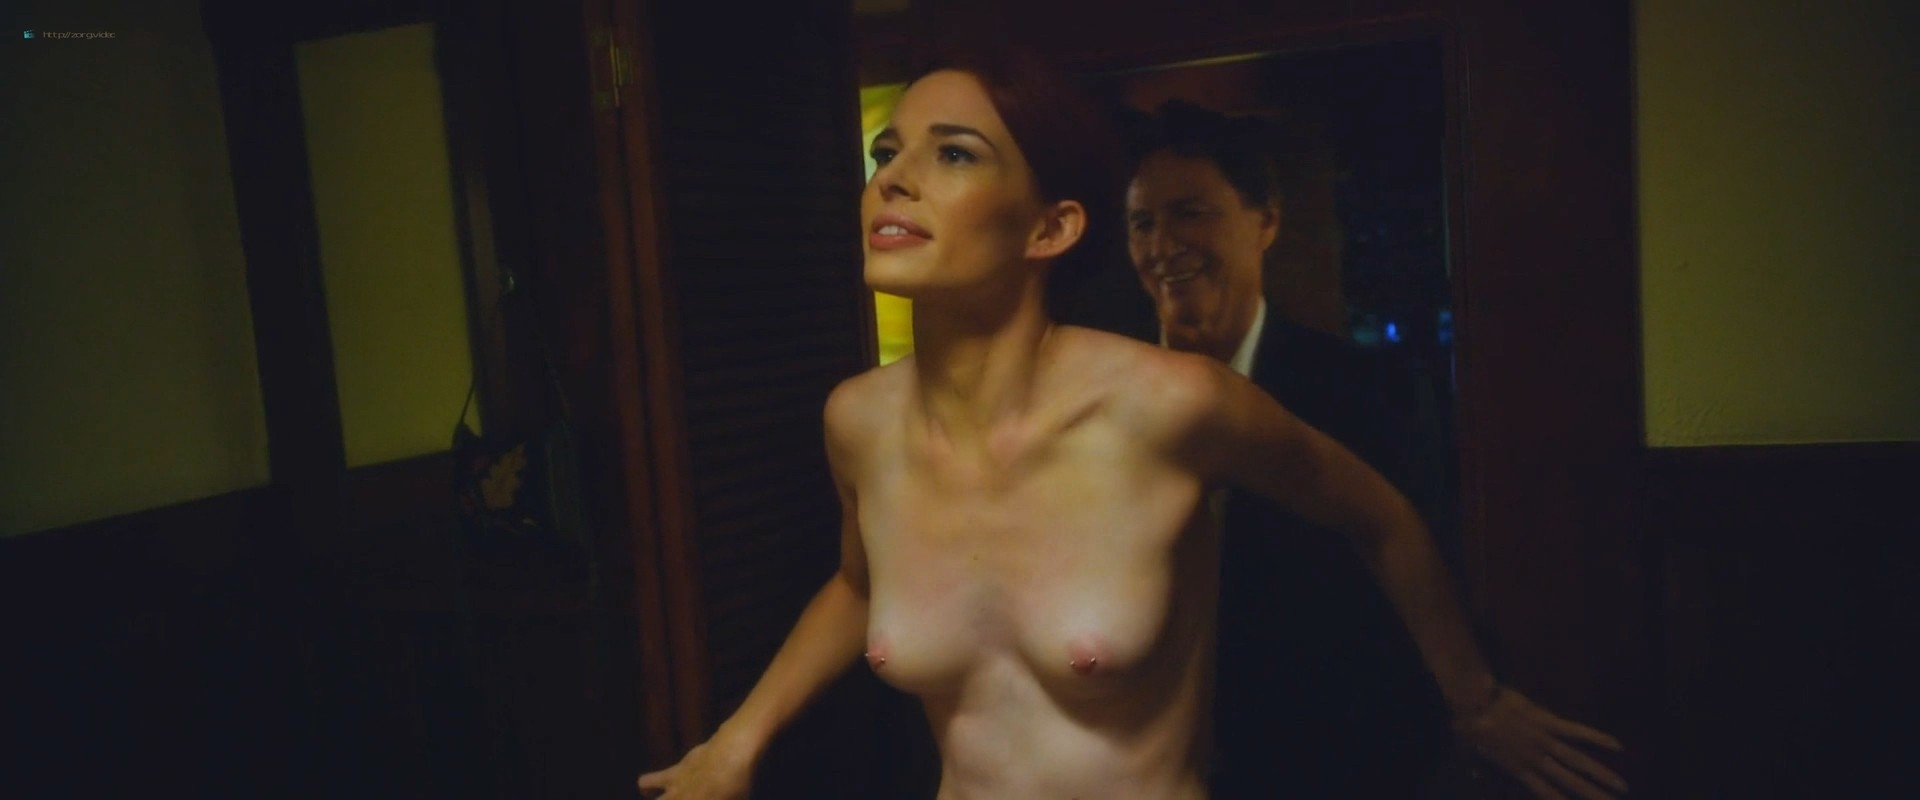 Chloe Dykstra nude topless and hot Ana Foxx and others hot - Diminuendo (2018) HD 1080p Web (14)